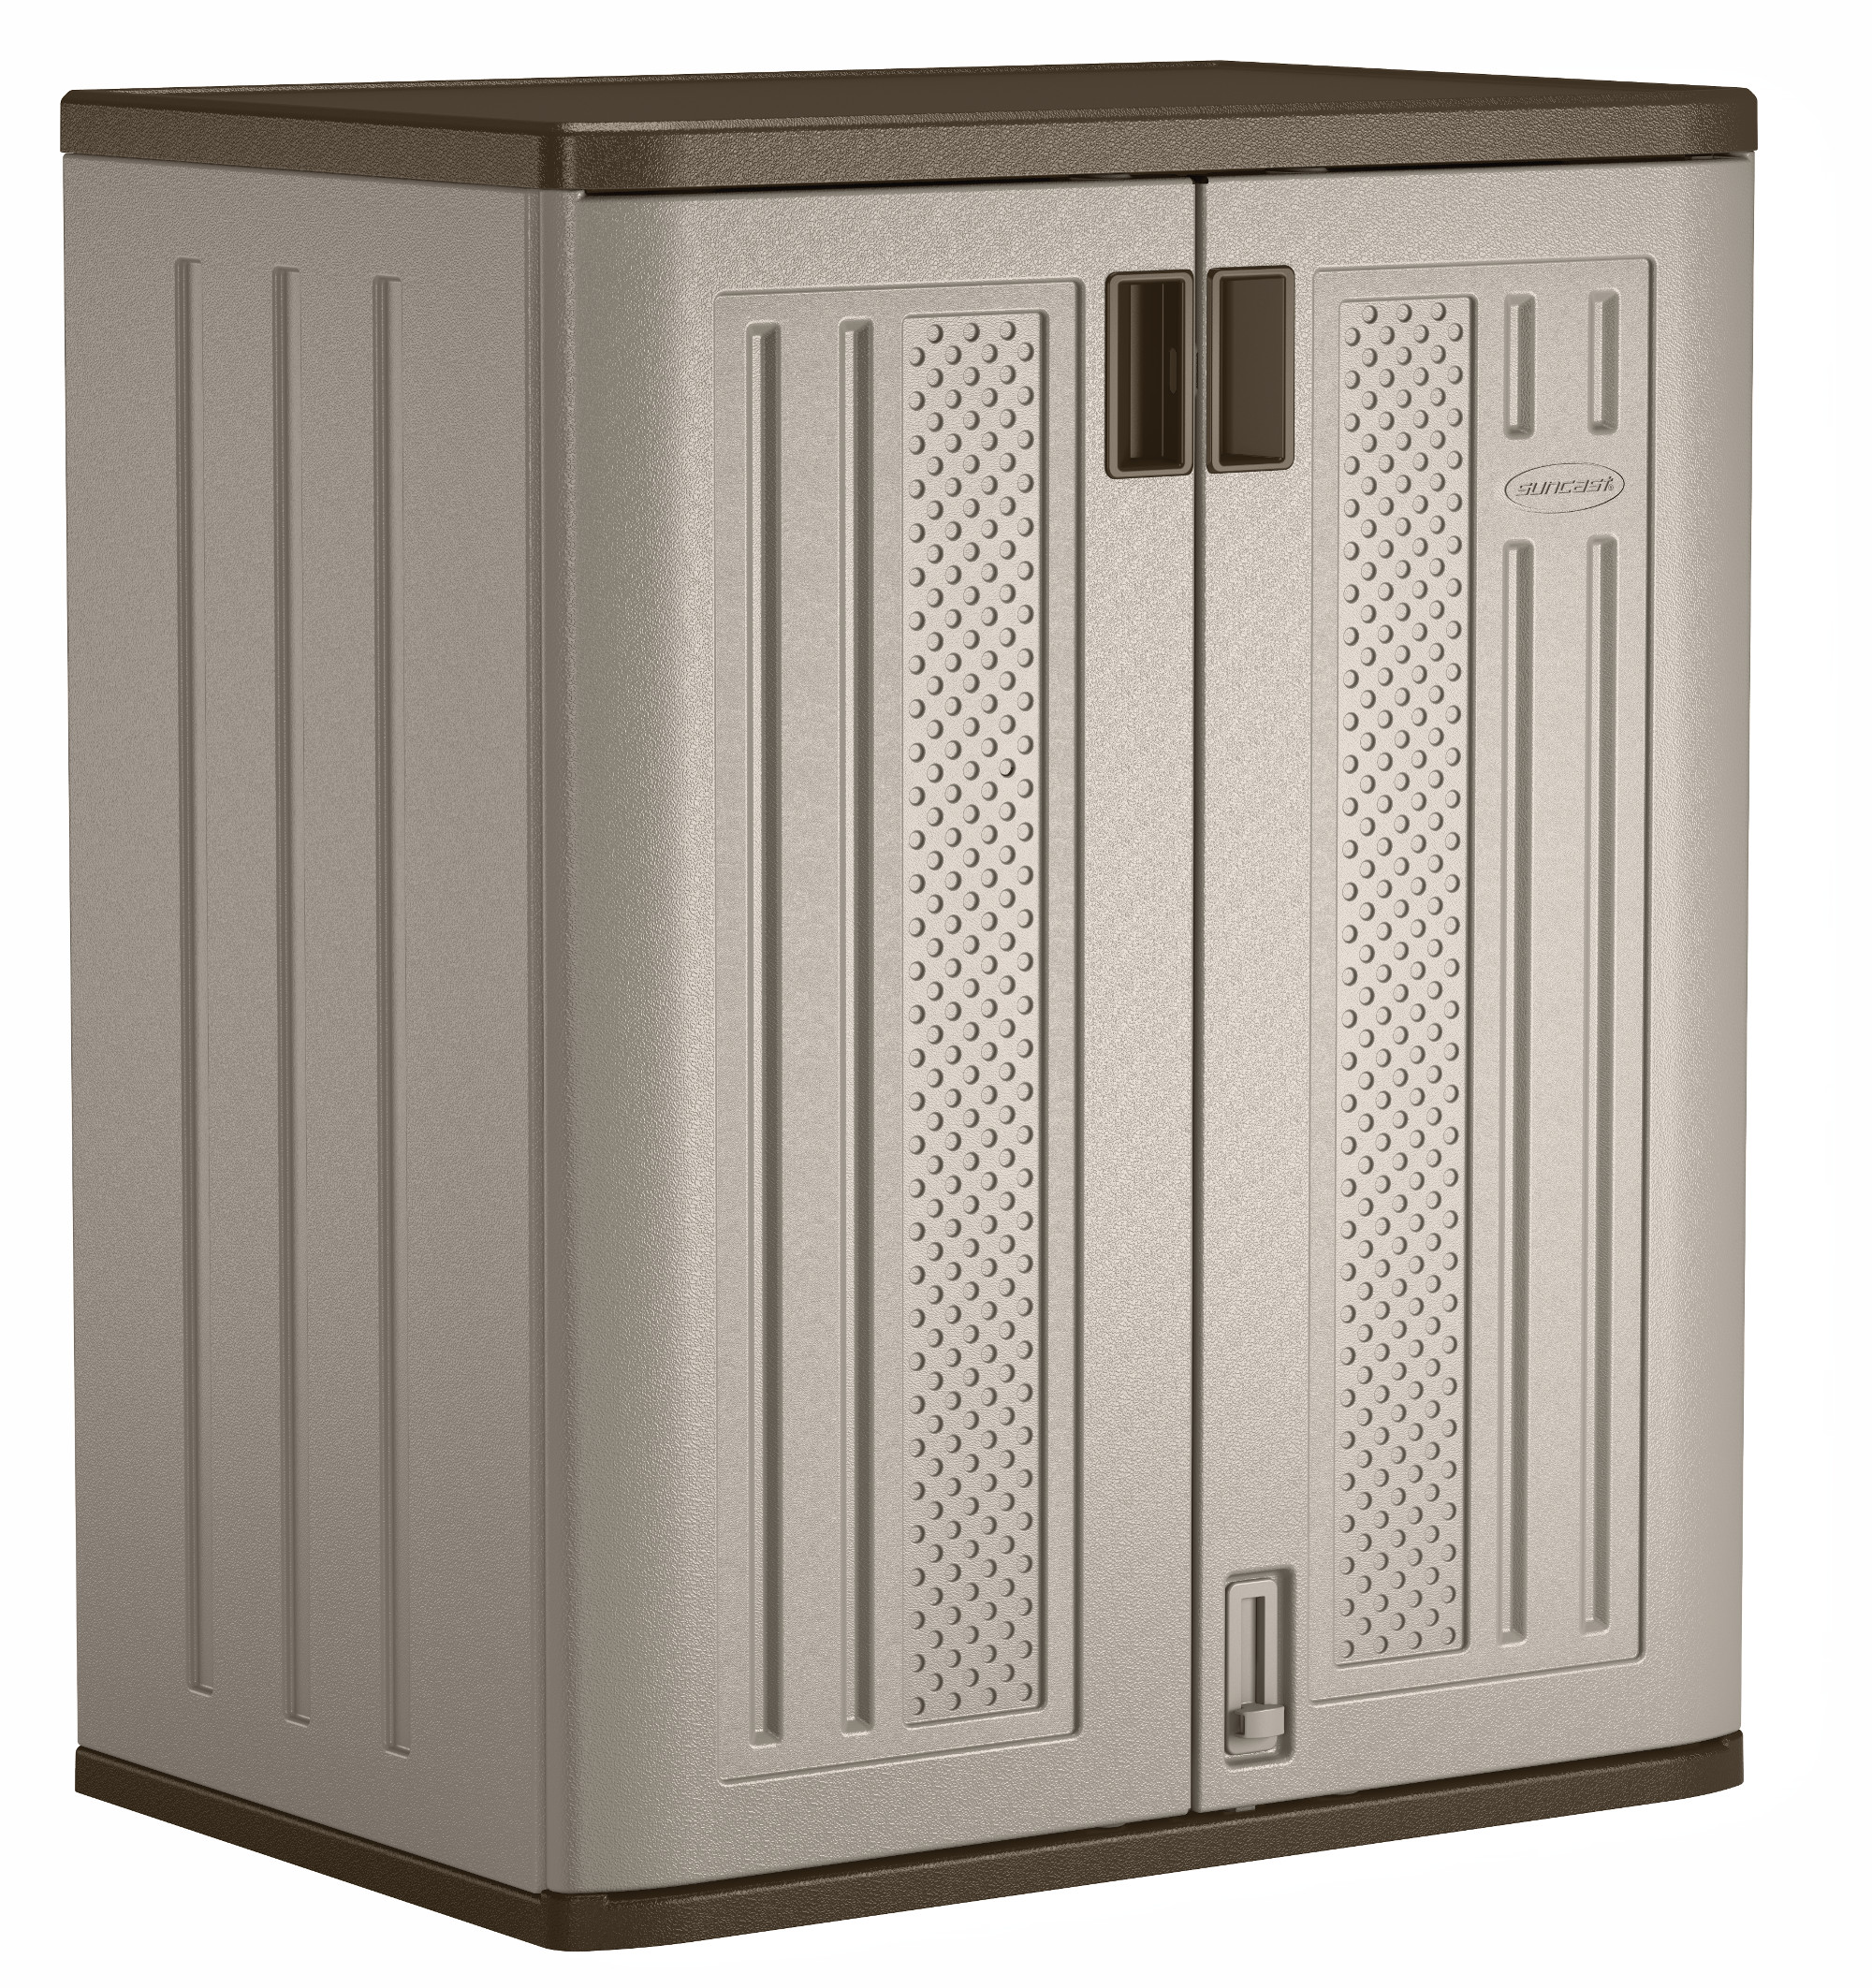 Suncast Storage Cabinet, Resin, BMC3600